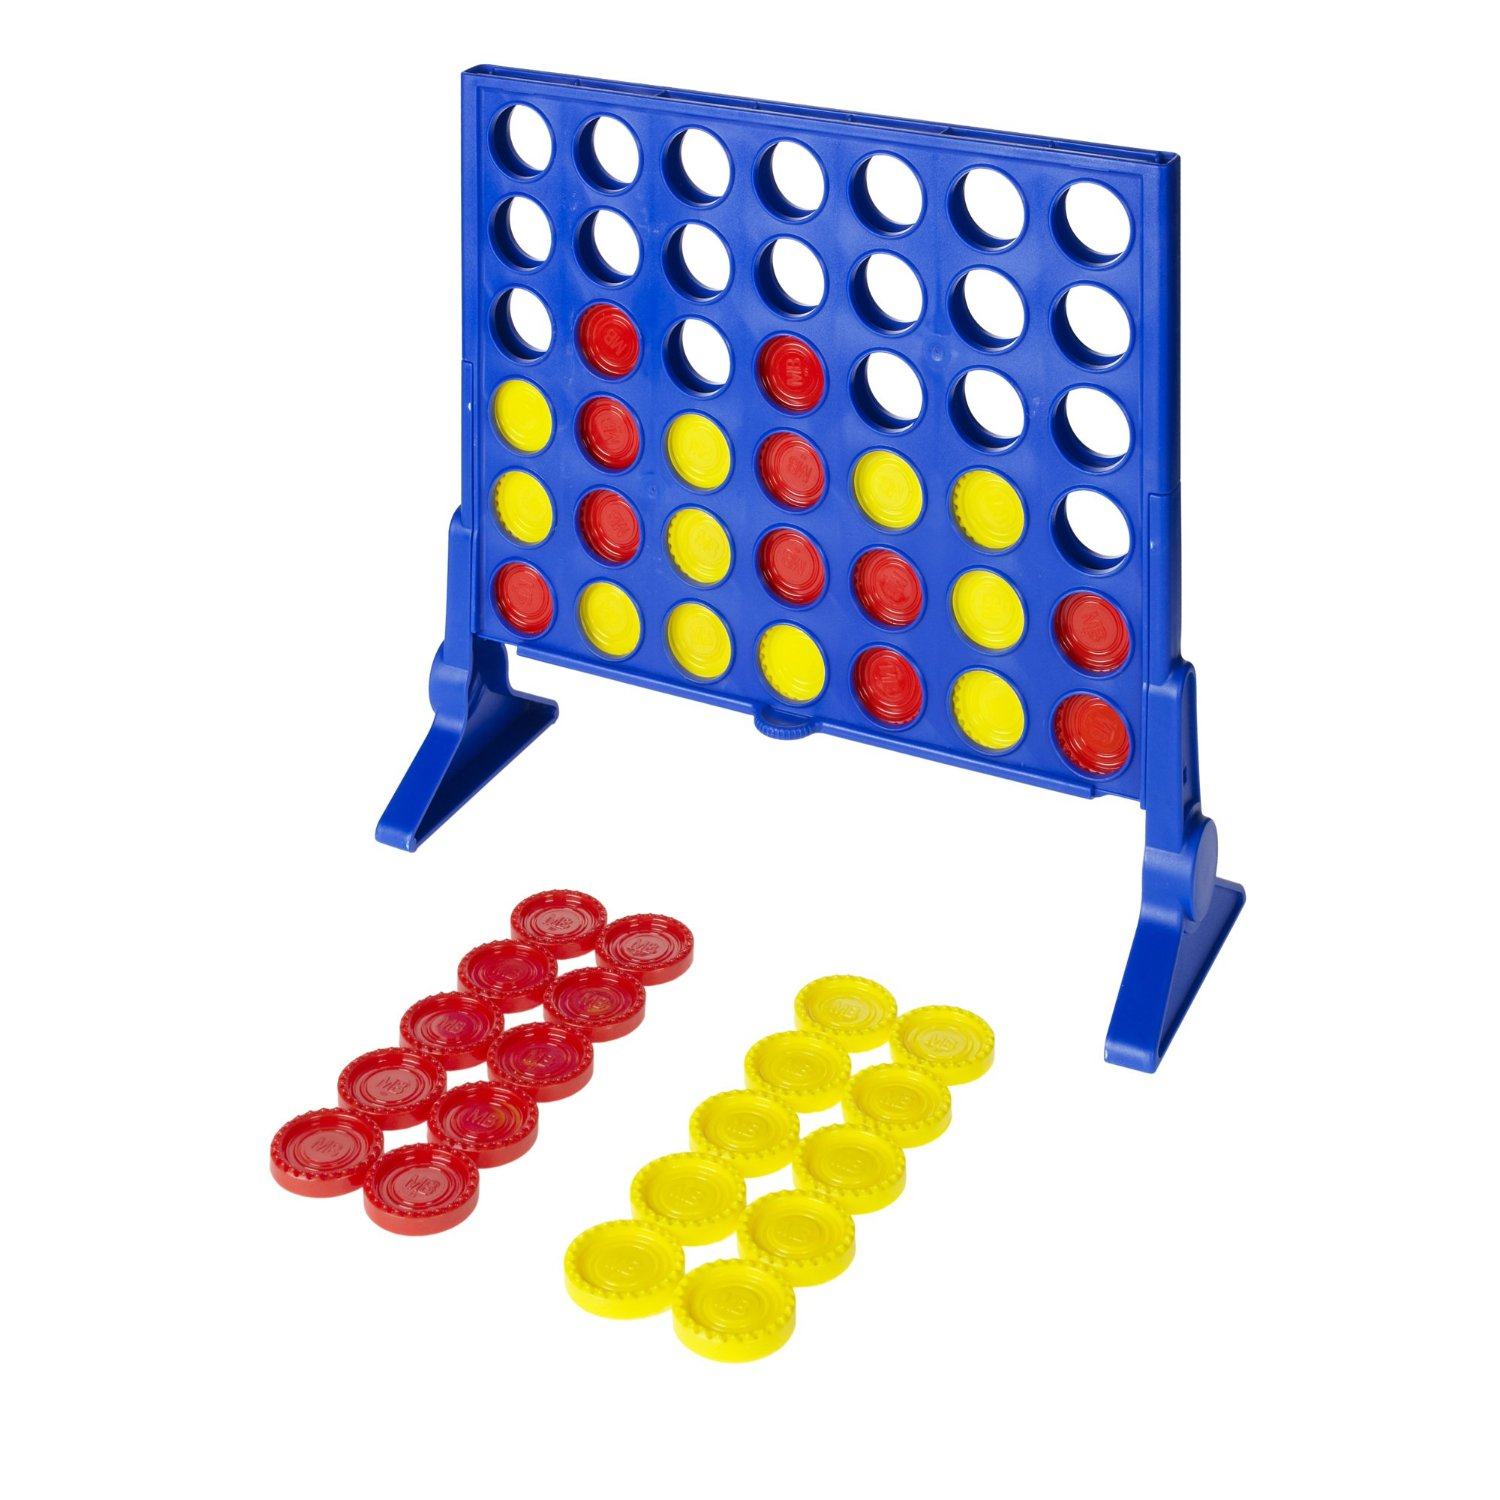 Connect 4 Classic Grid Game Board Games Messiah